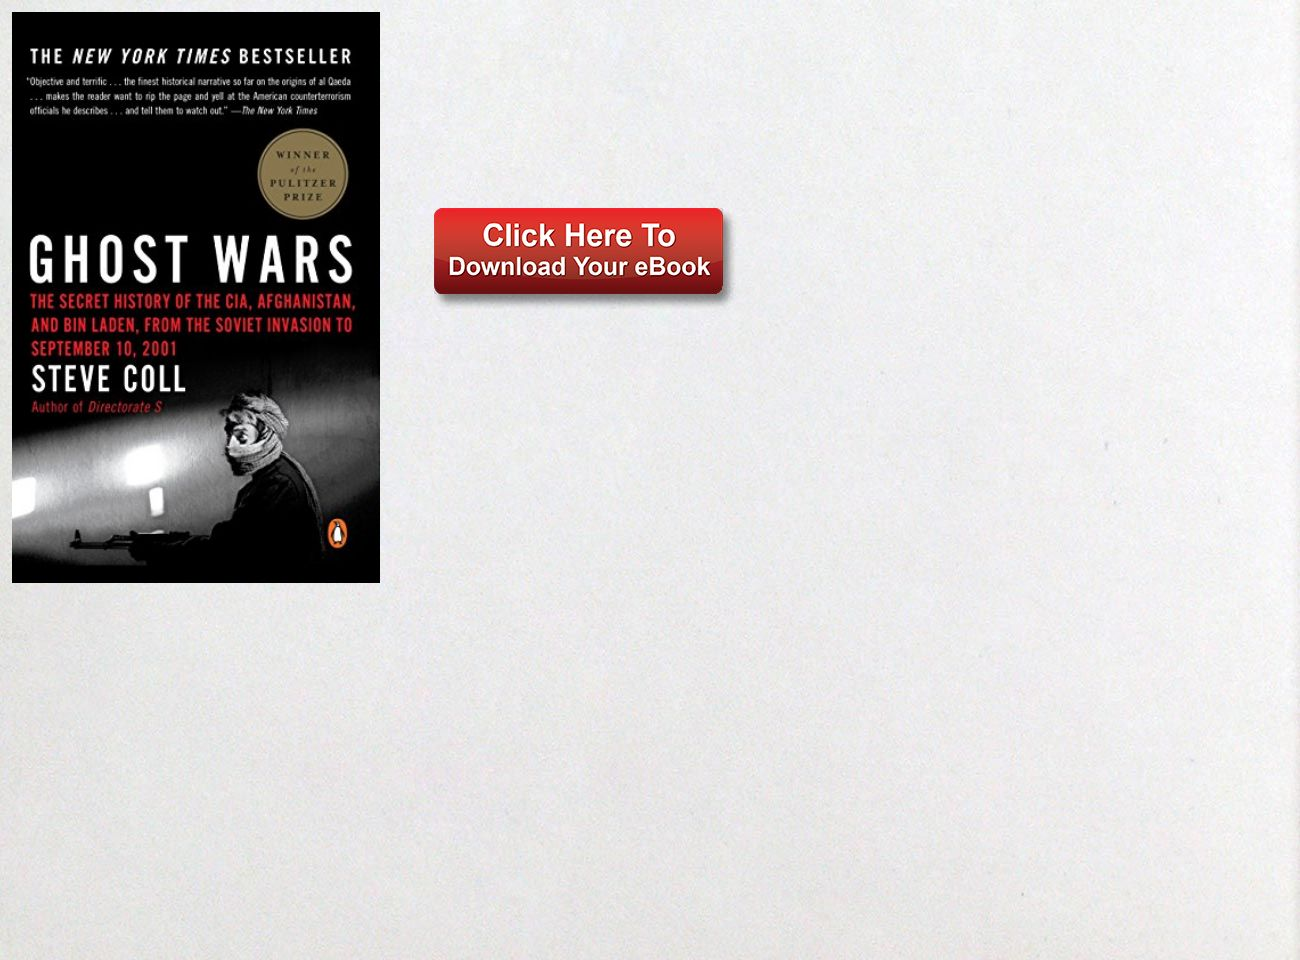 Ghost Wars Ebook